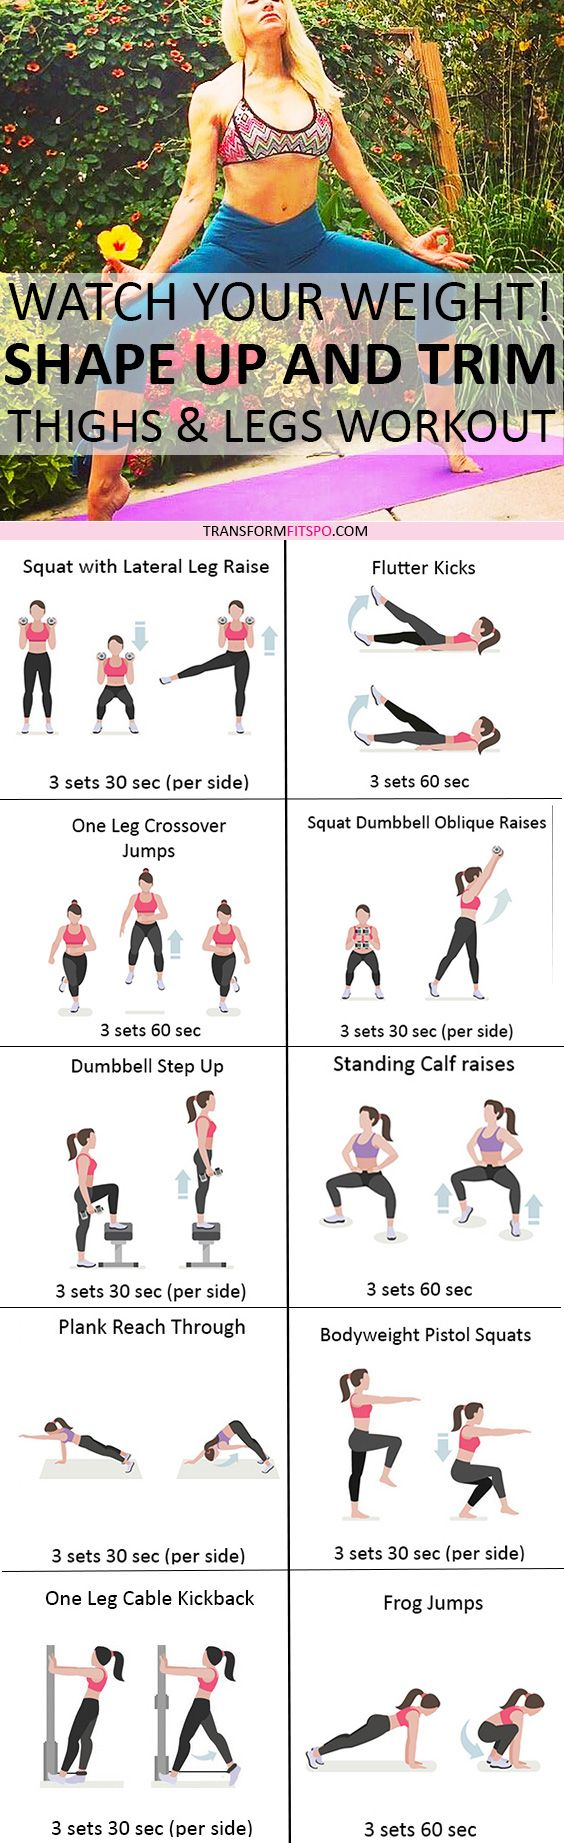 Repin and share if this workout gave you sexy, toned legs! Read the post for all the info!